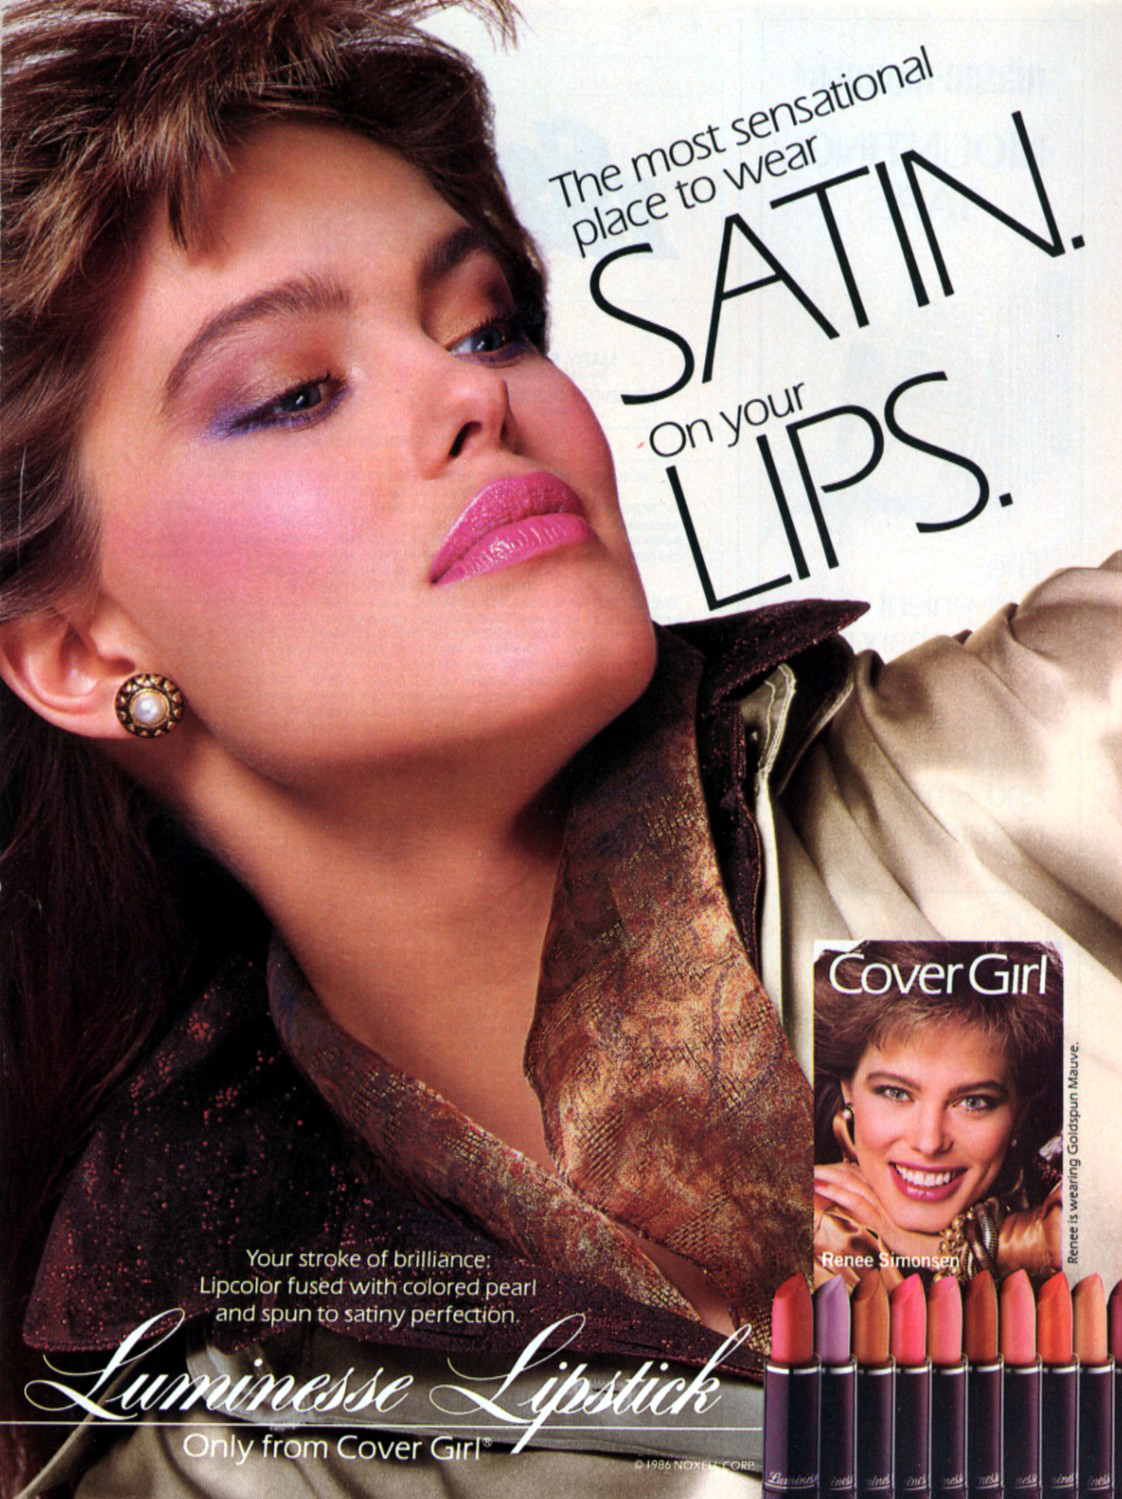 satin-lips-lipstick-advertisement-1980s